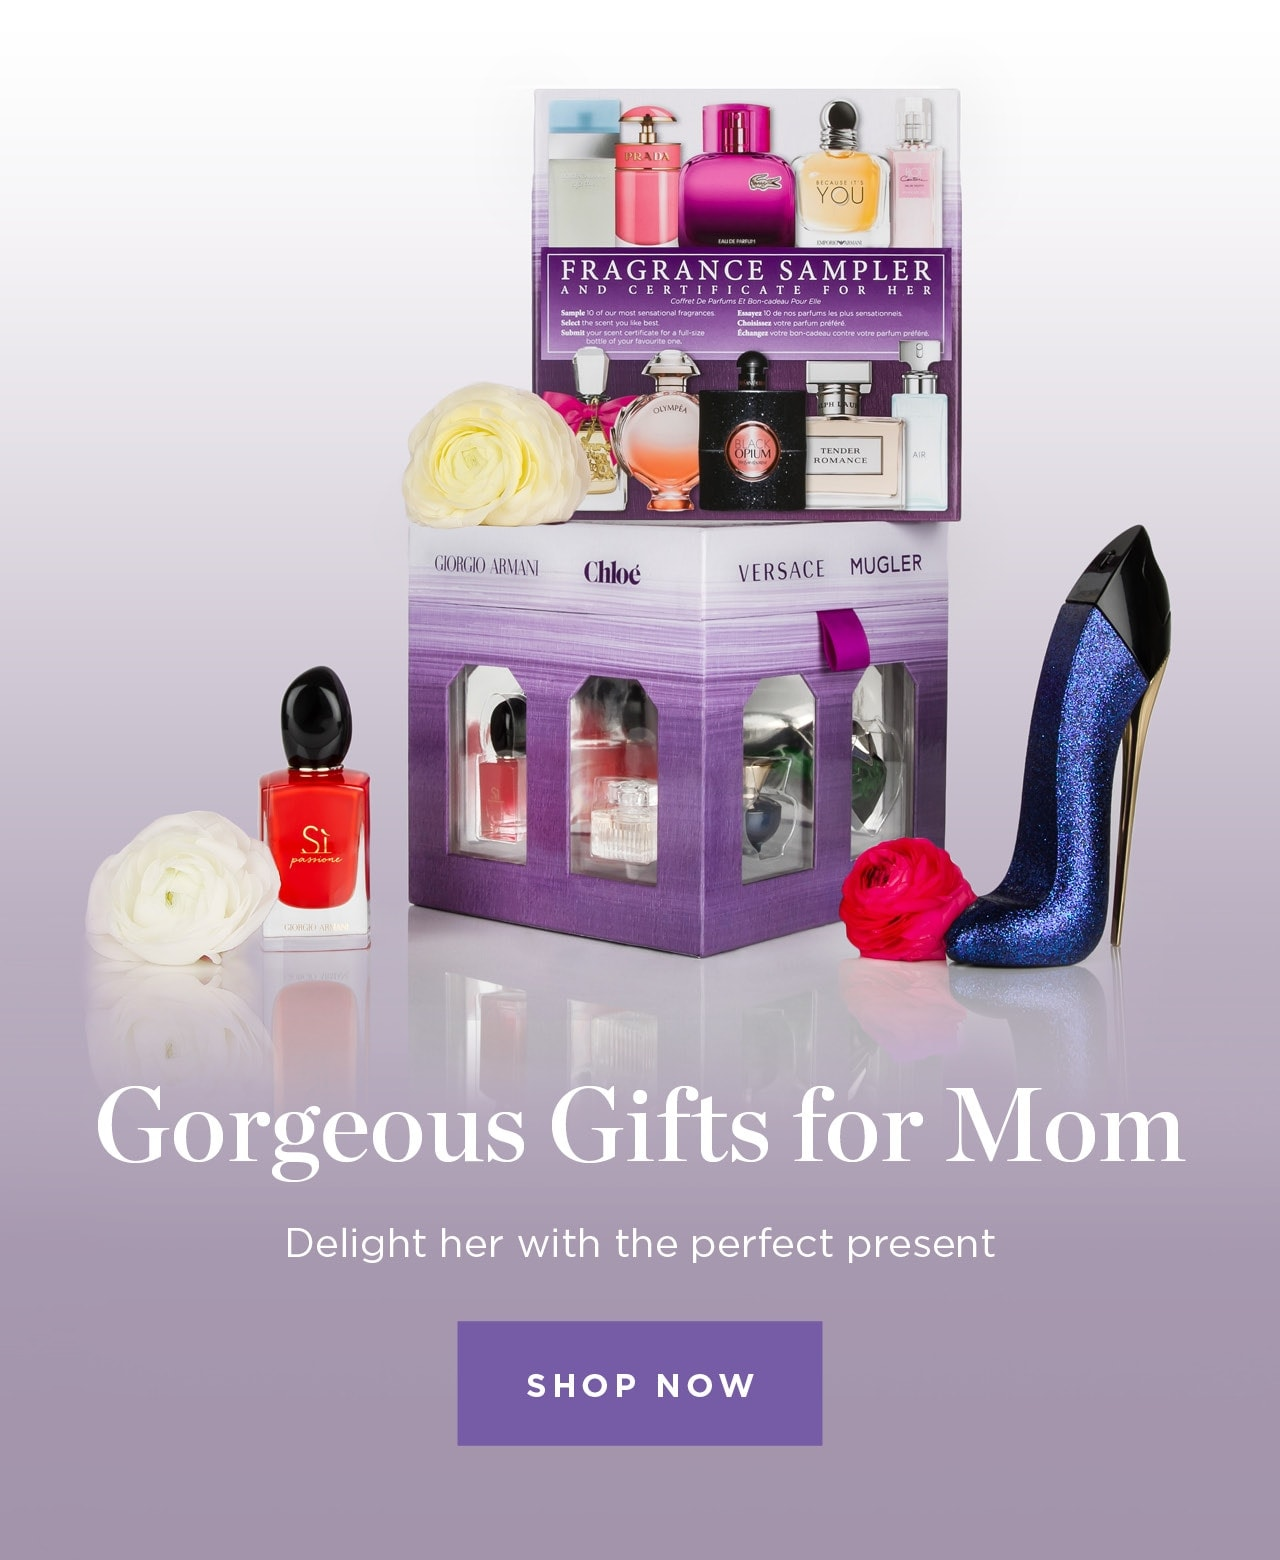 GOrgeous Gifts for Mom. Delight her with the perfect gift. Shop Now